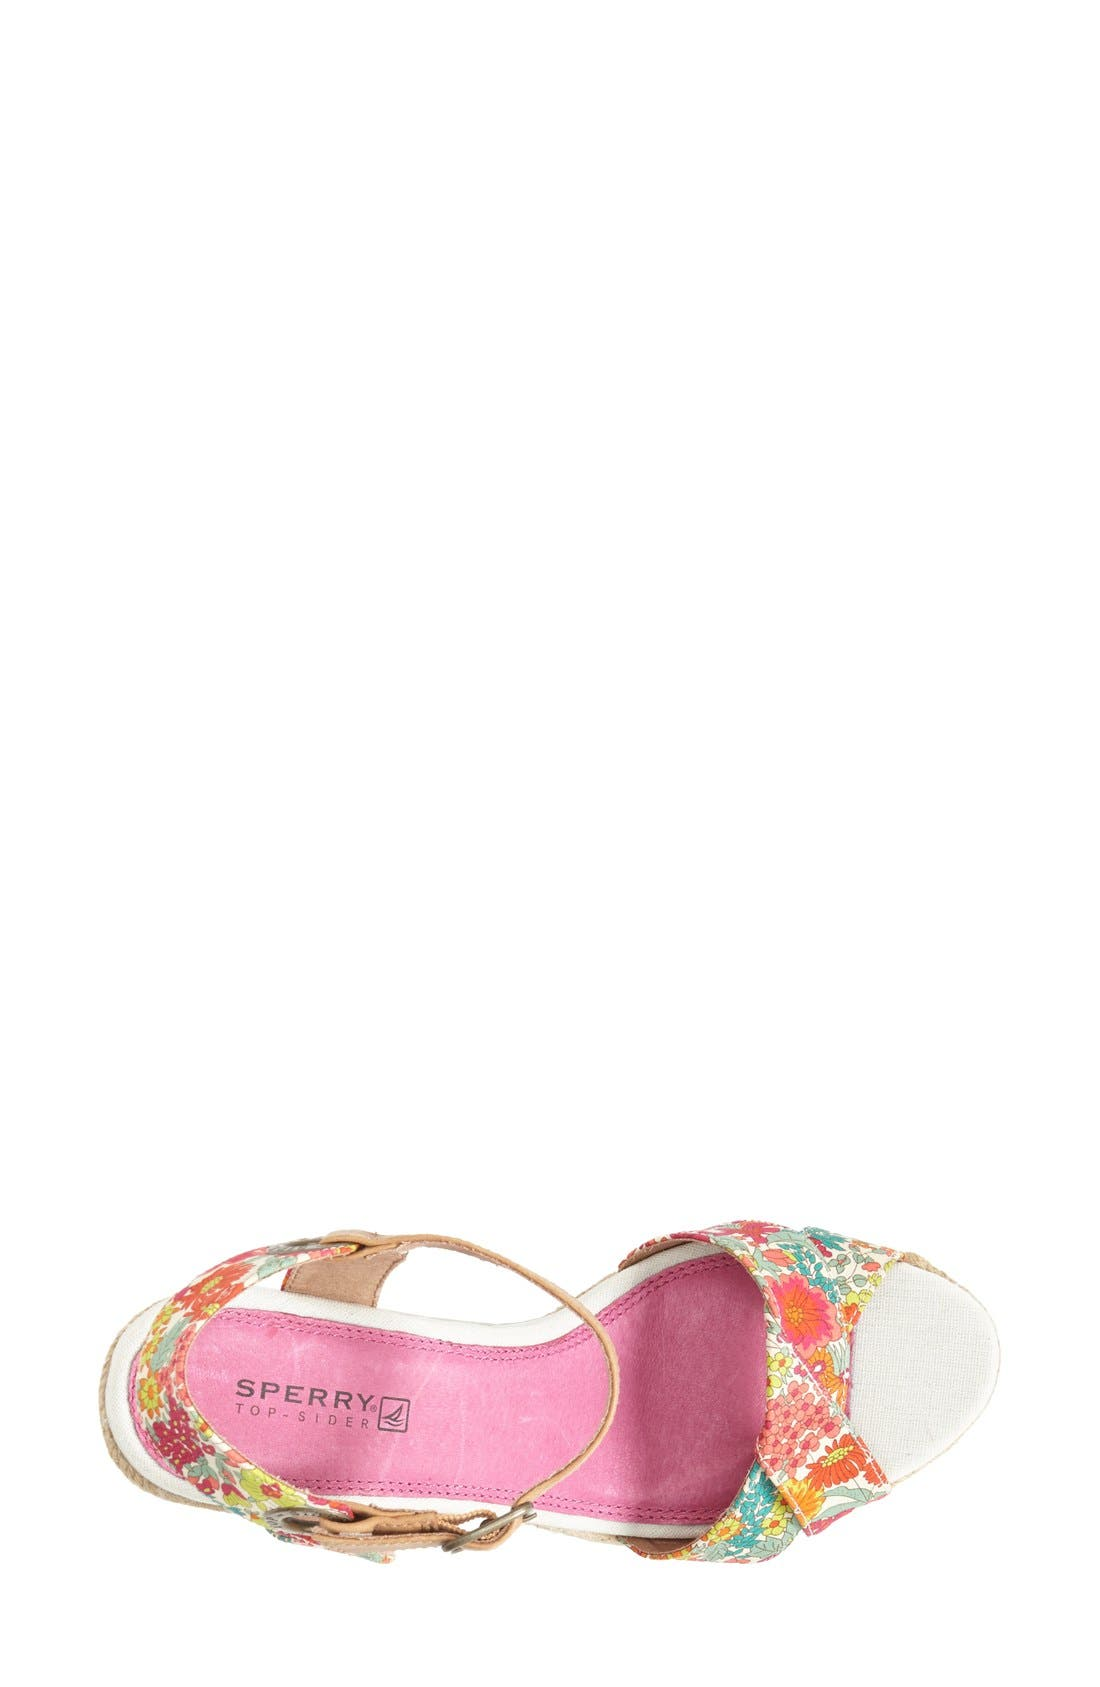 Alternate Image 3  - Sperry 'Saylor' Espadrille Wedge Sandal (Women)